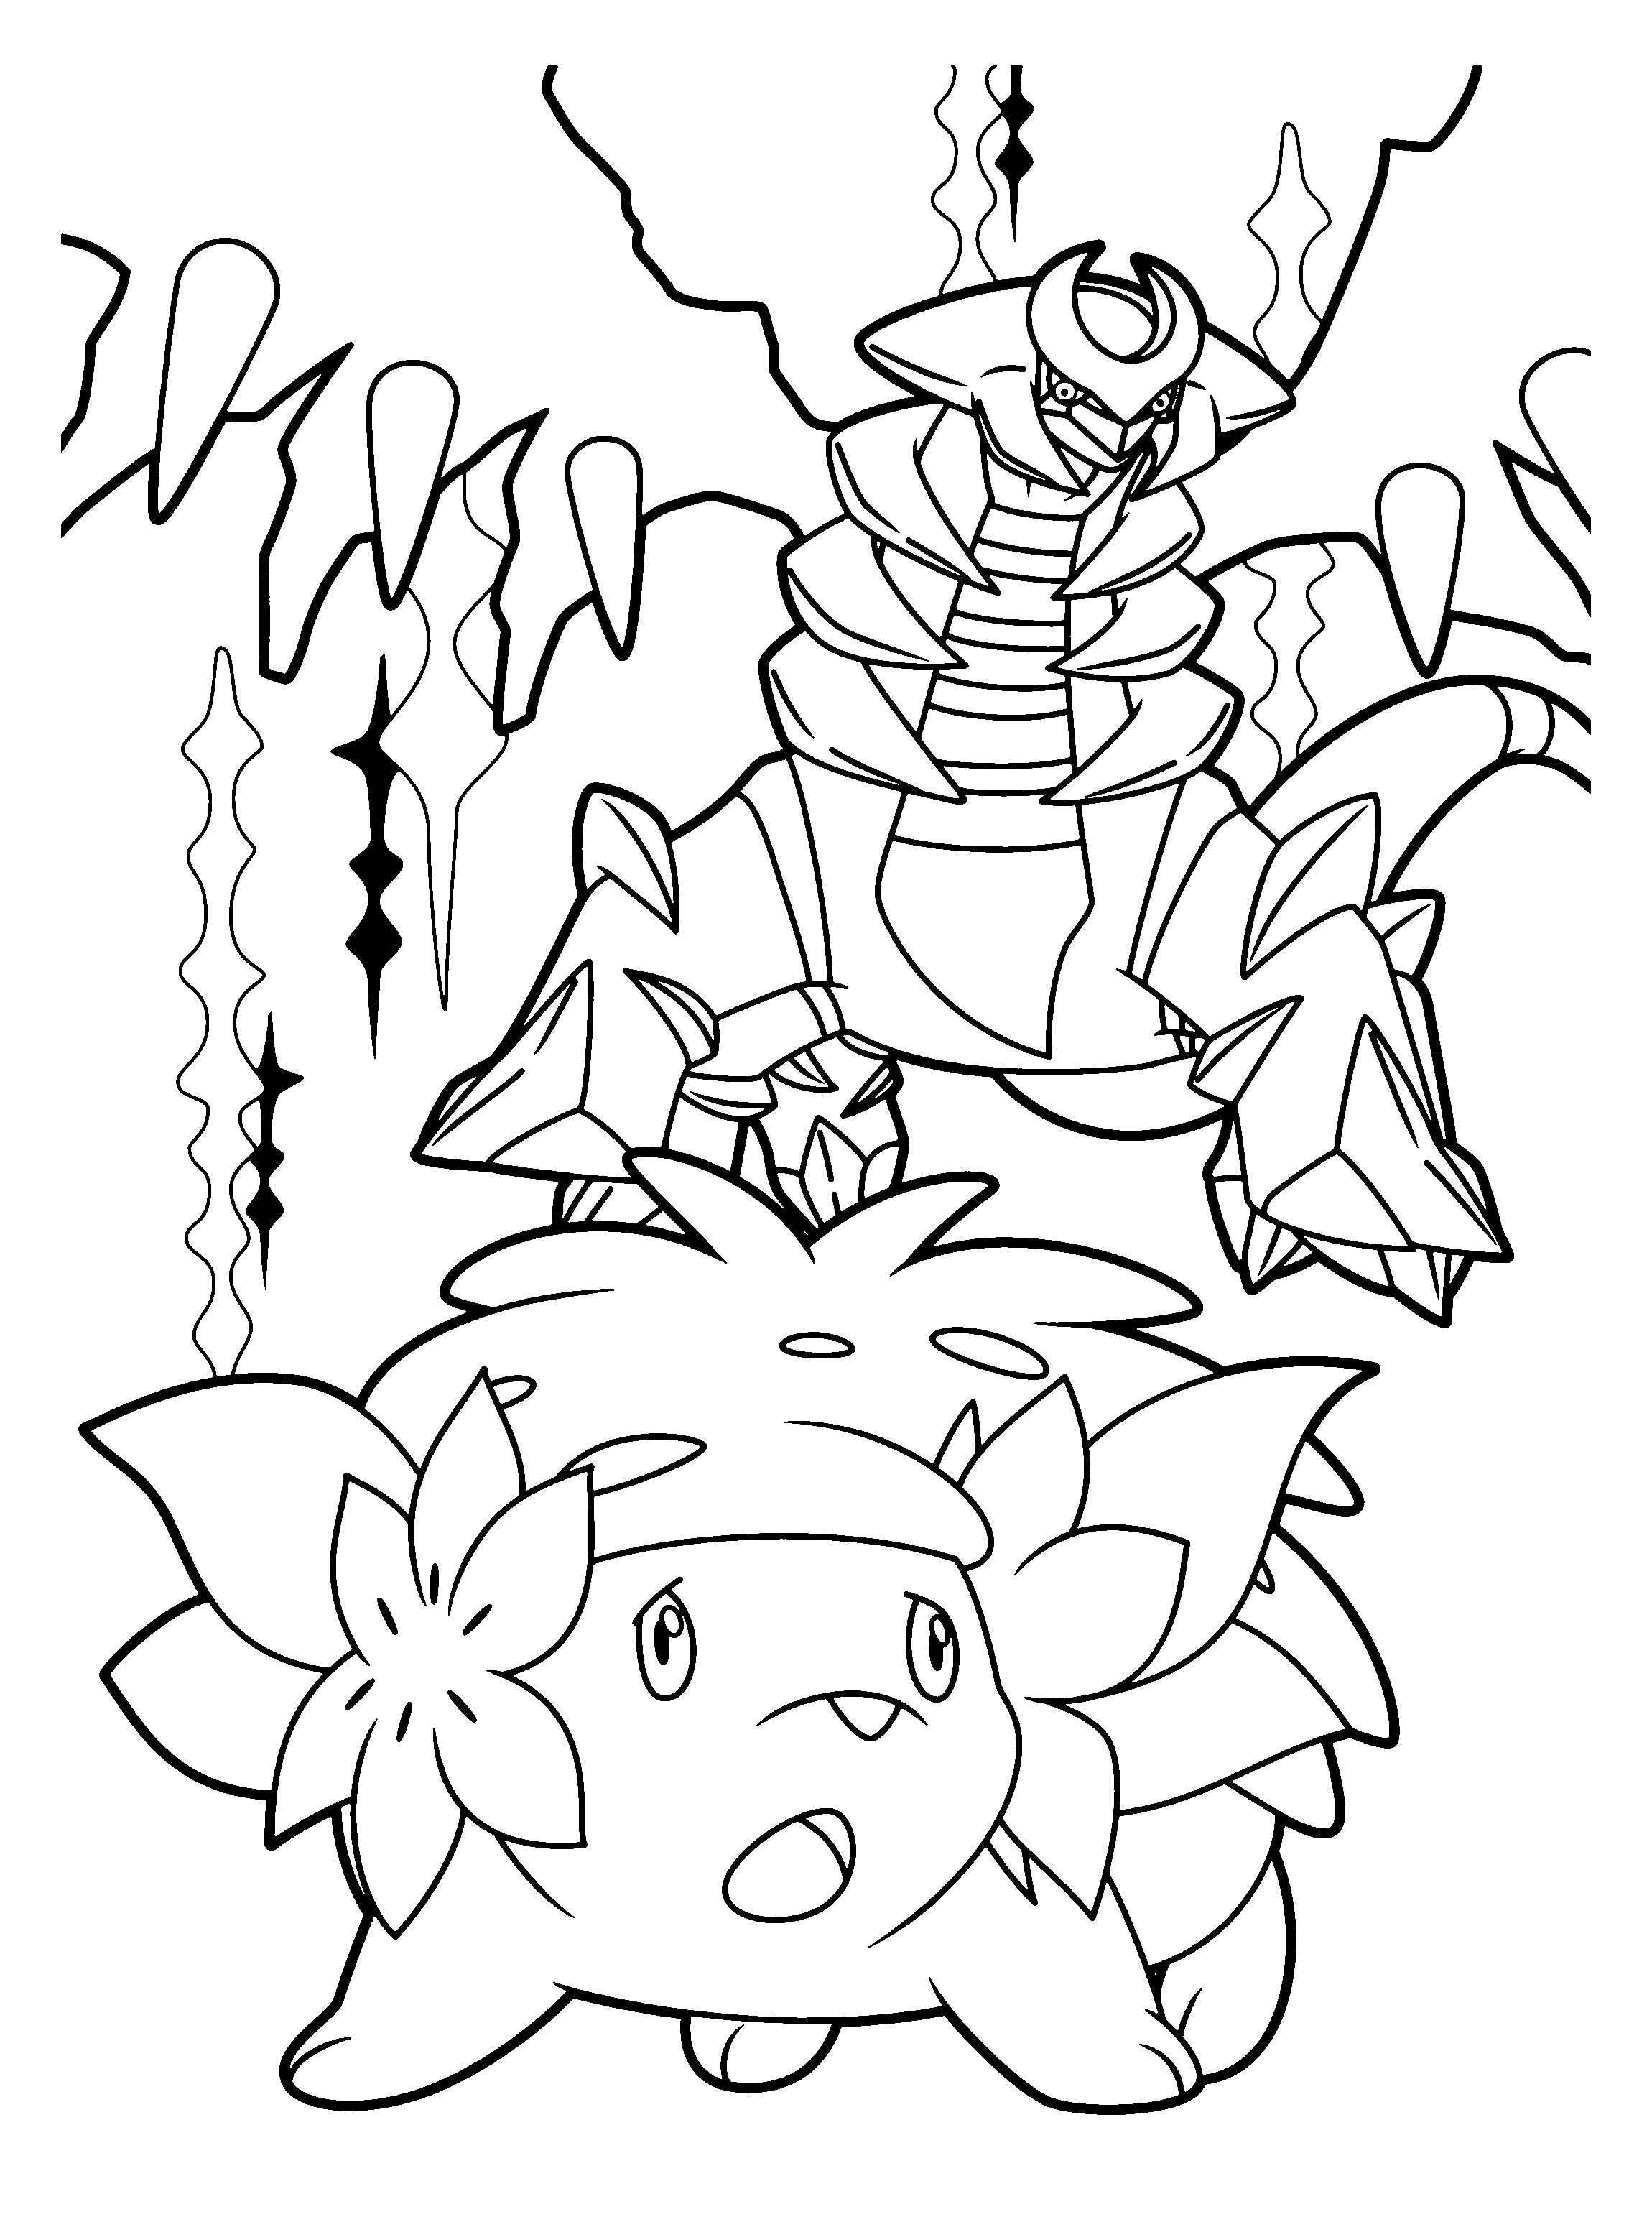 coloring pages giratina - photo#16